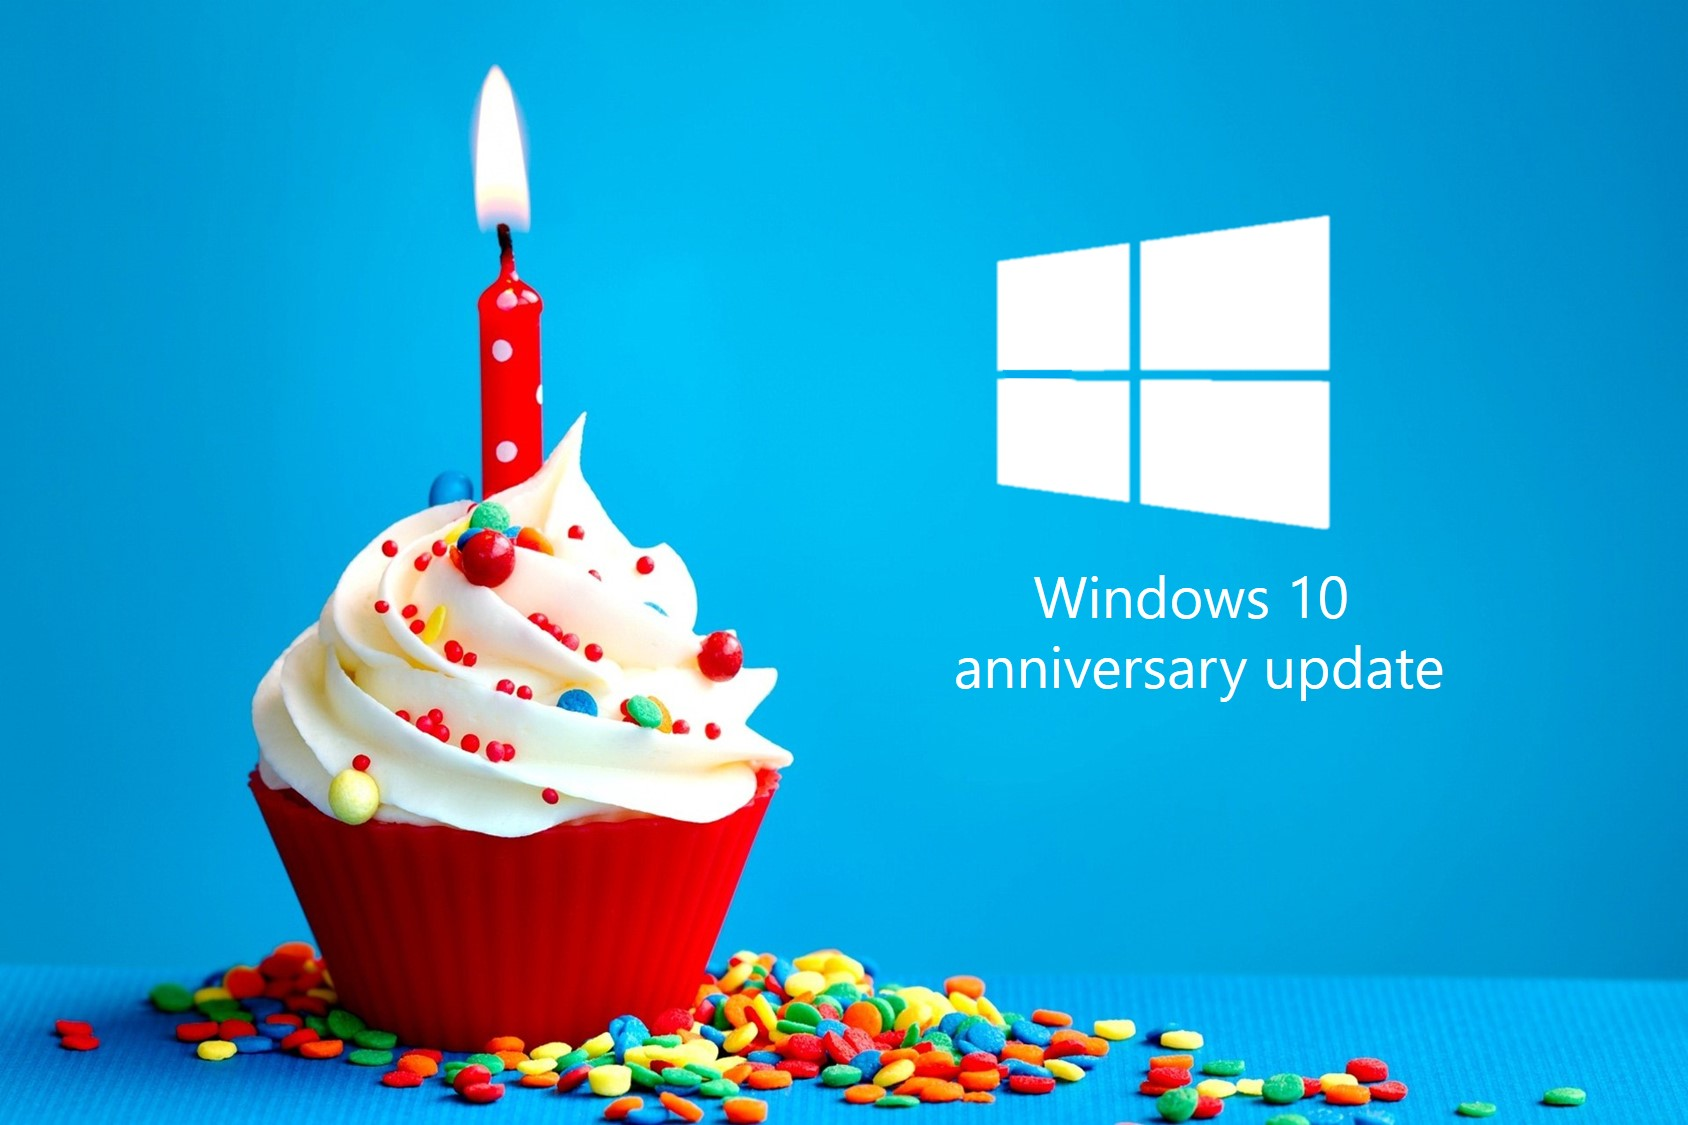 Hvordan installere Windows 10 anniversary update